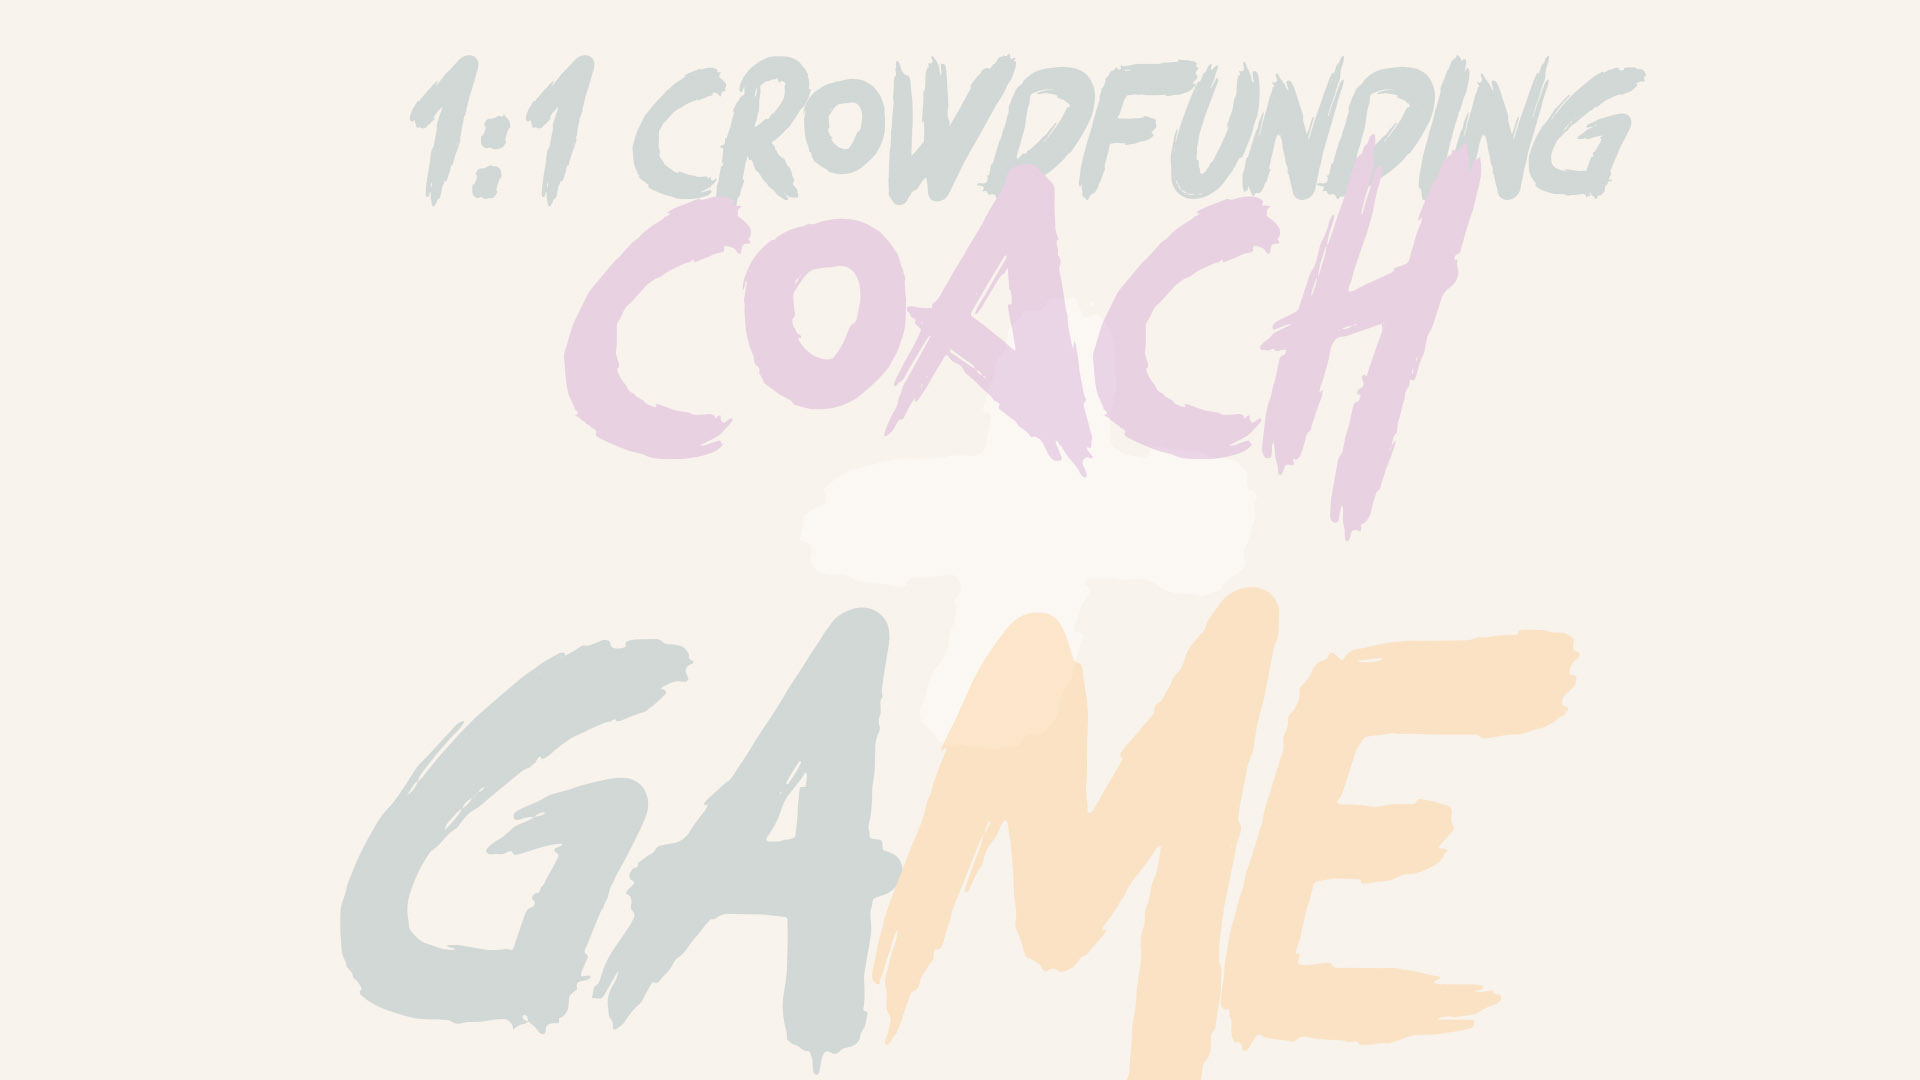 1:1 Crowdfunding Coaching + Game Crowdfunding From Start to Funded Course BUNDLE